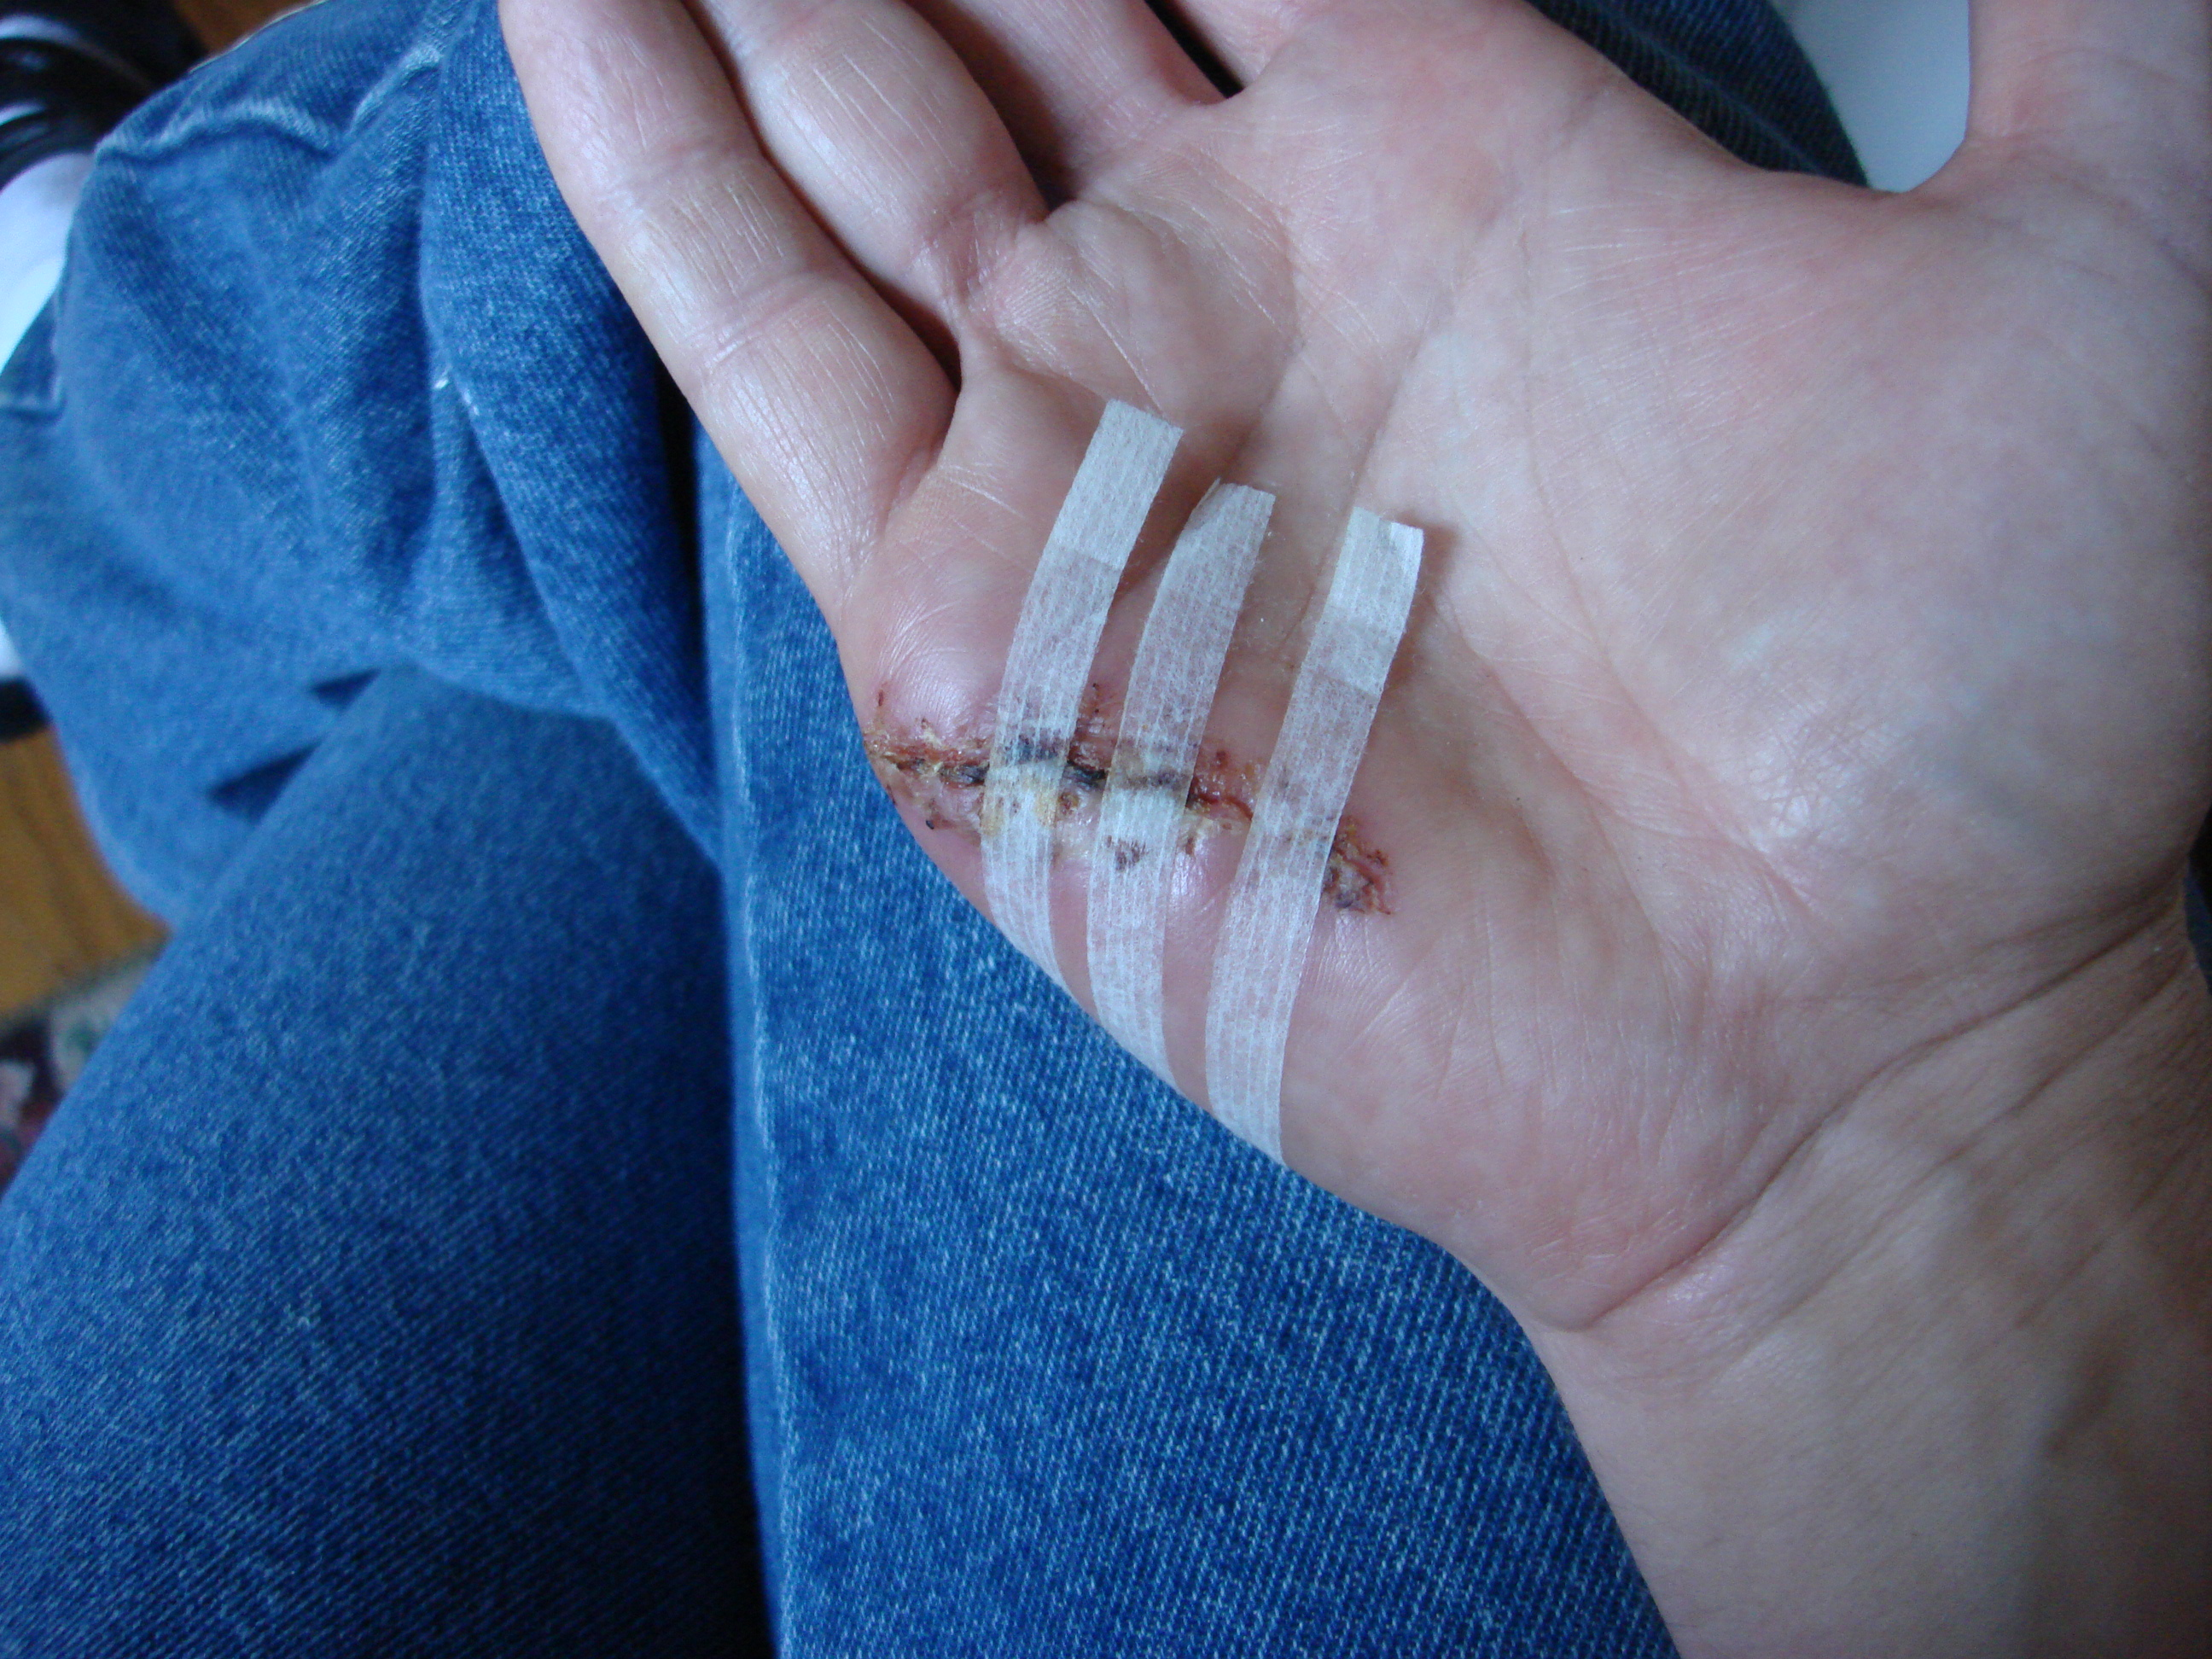 how to make steri strips fall off